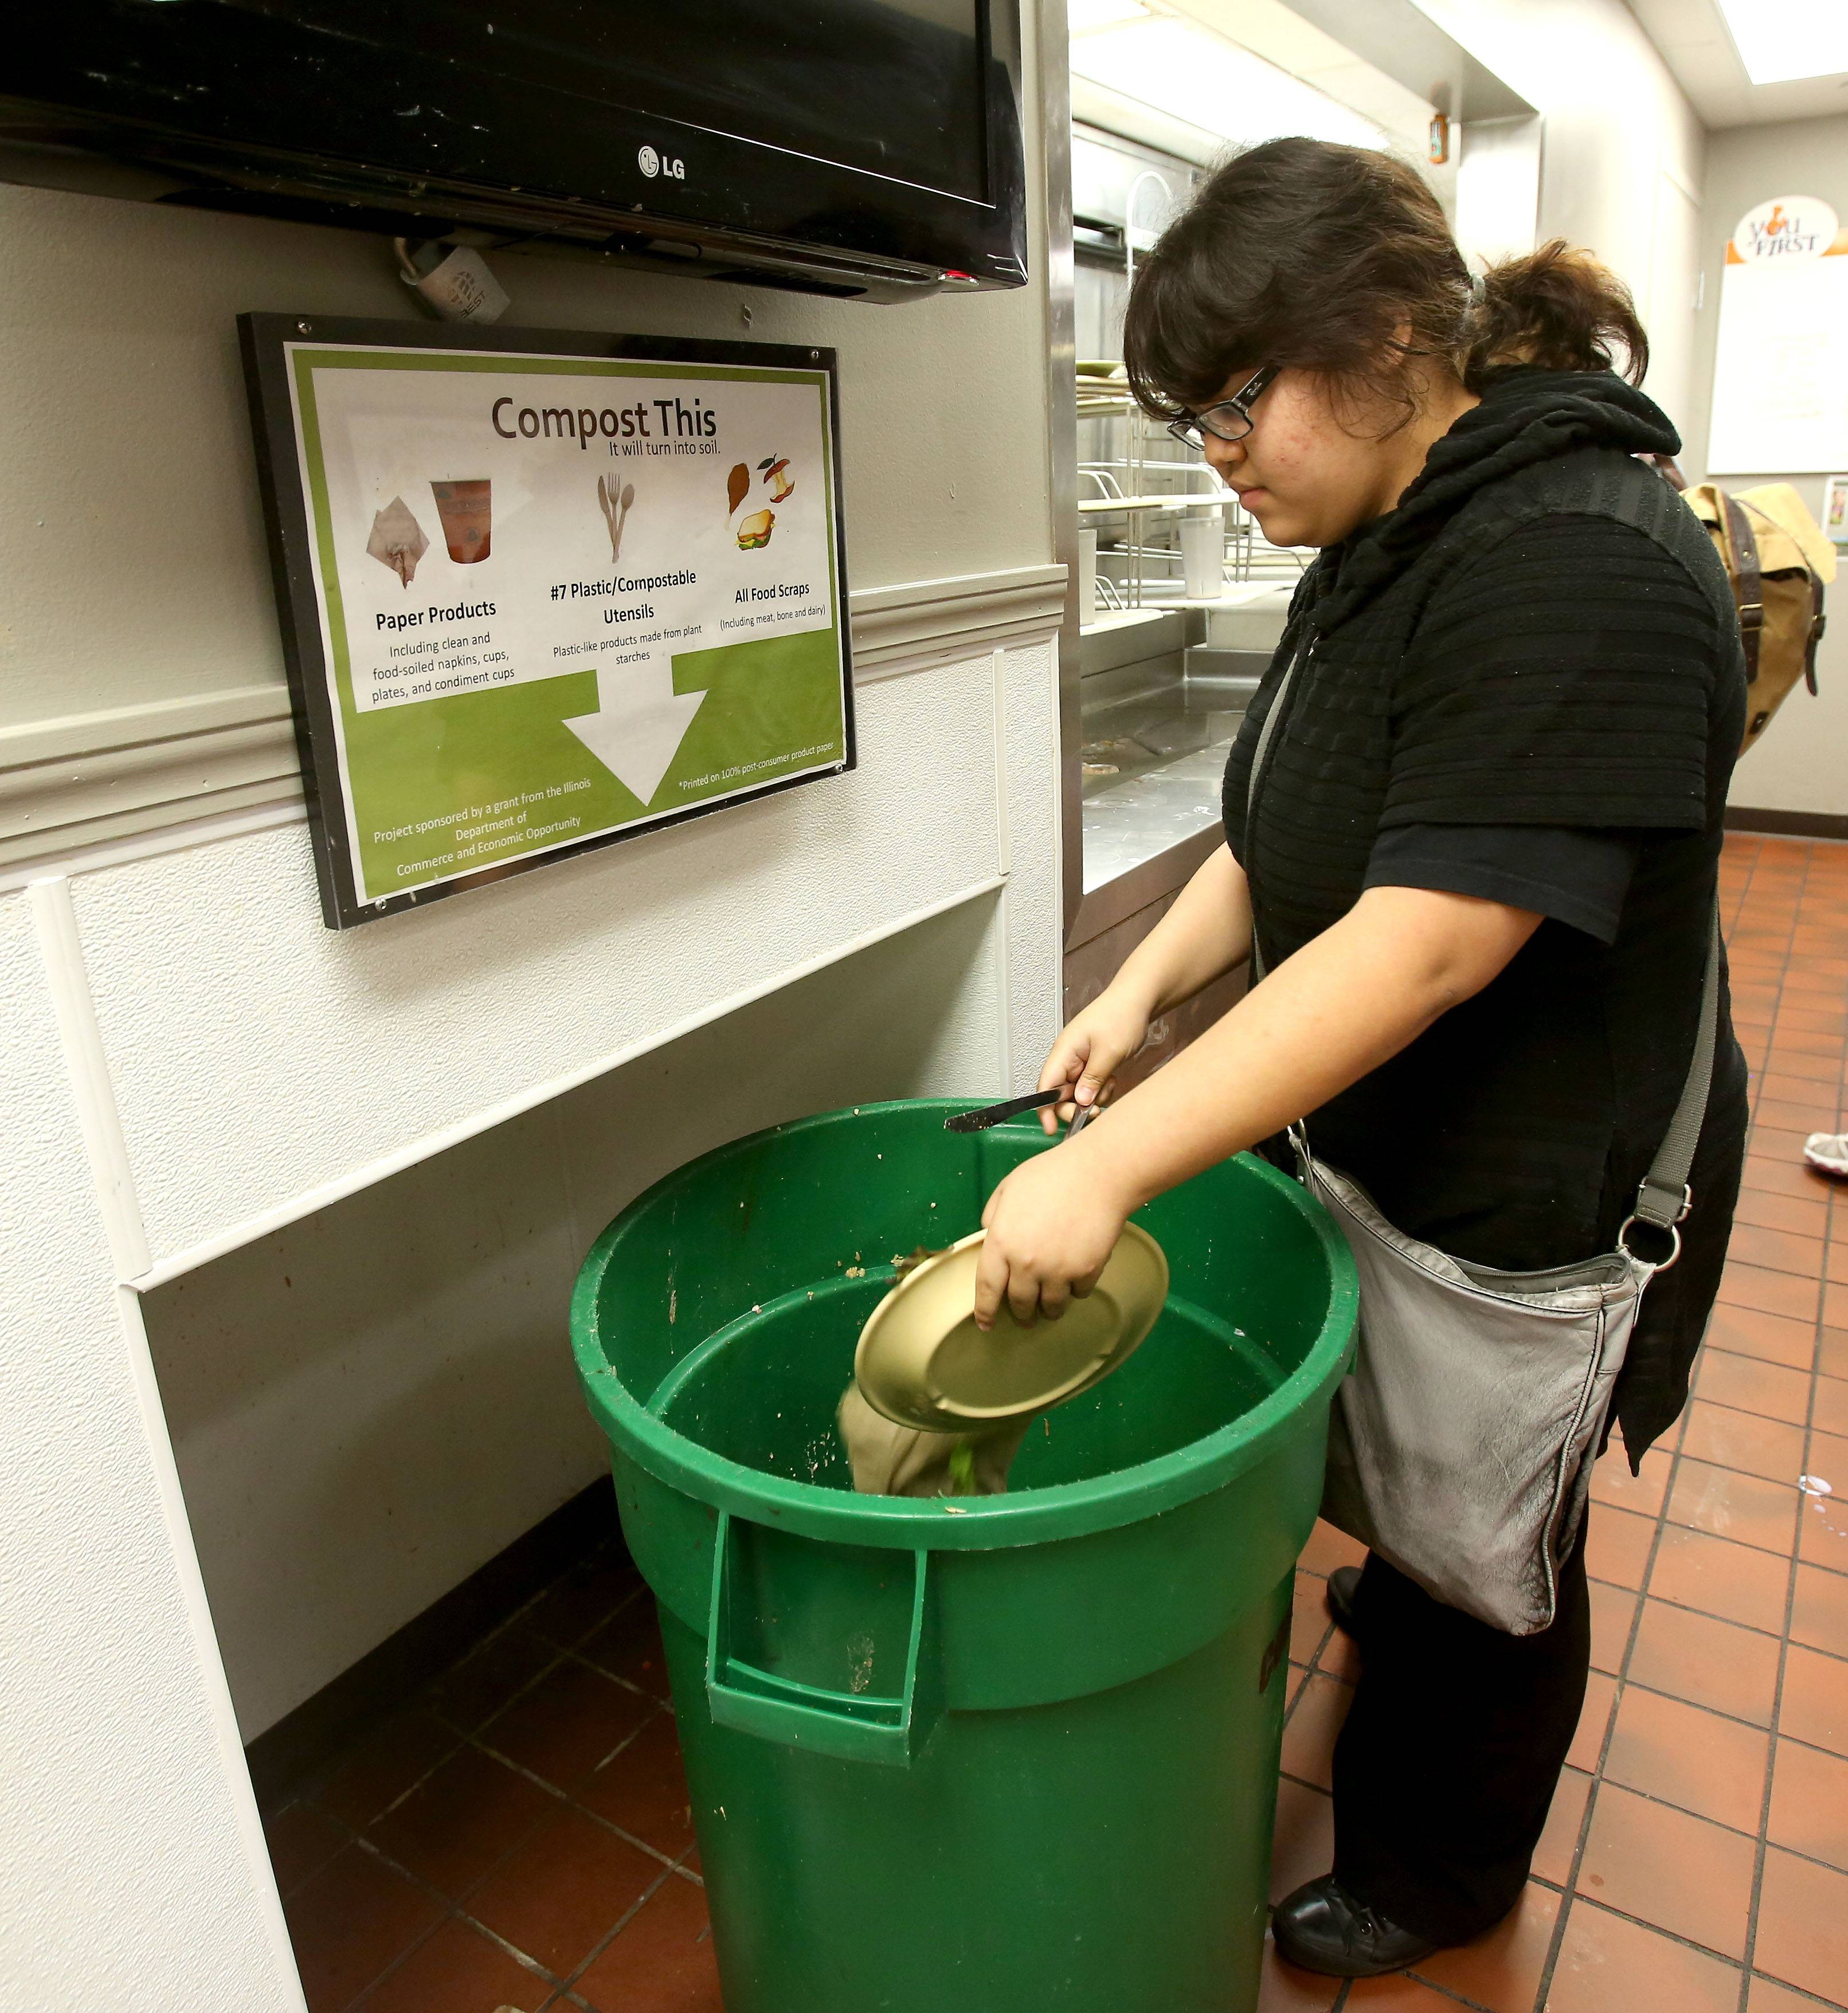 Freshman Karina Reitz uses the compost bin at North Central College in Naperville.